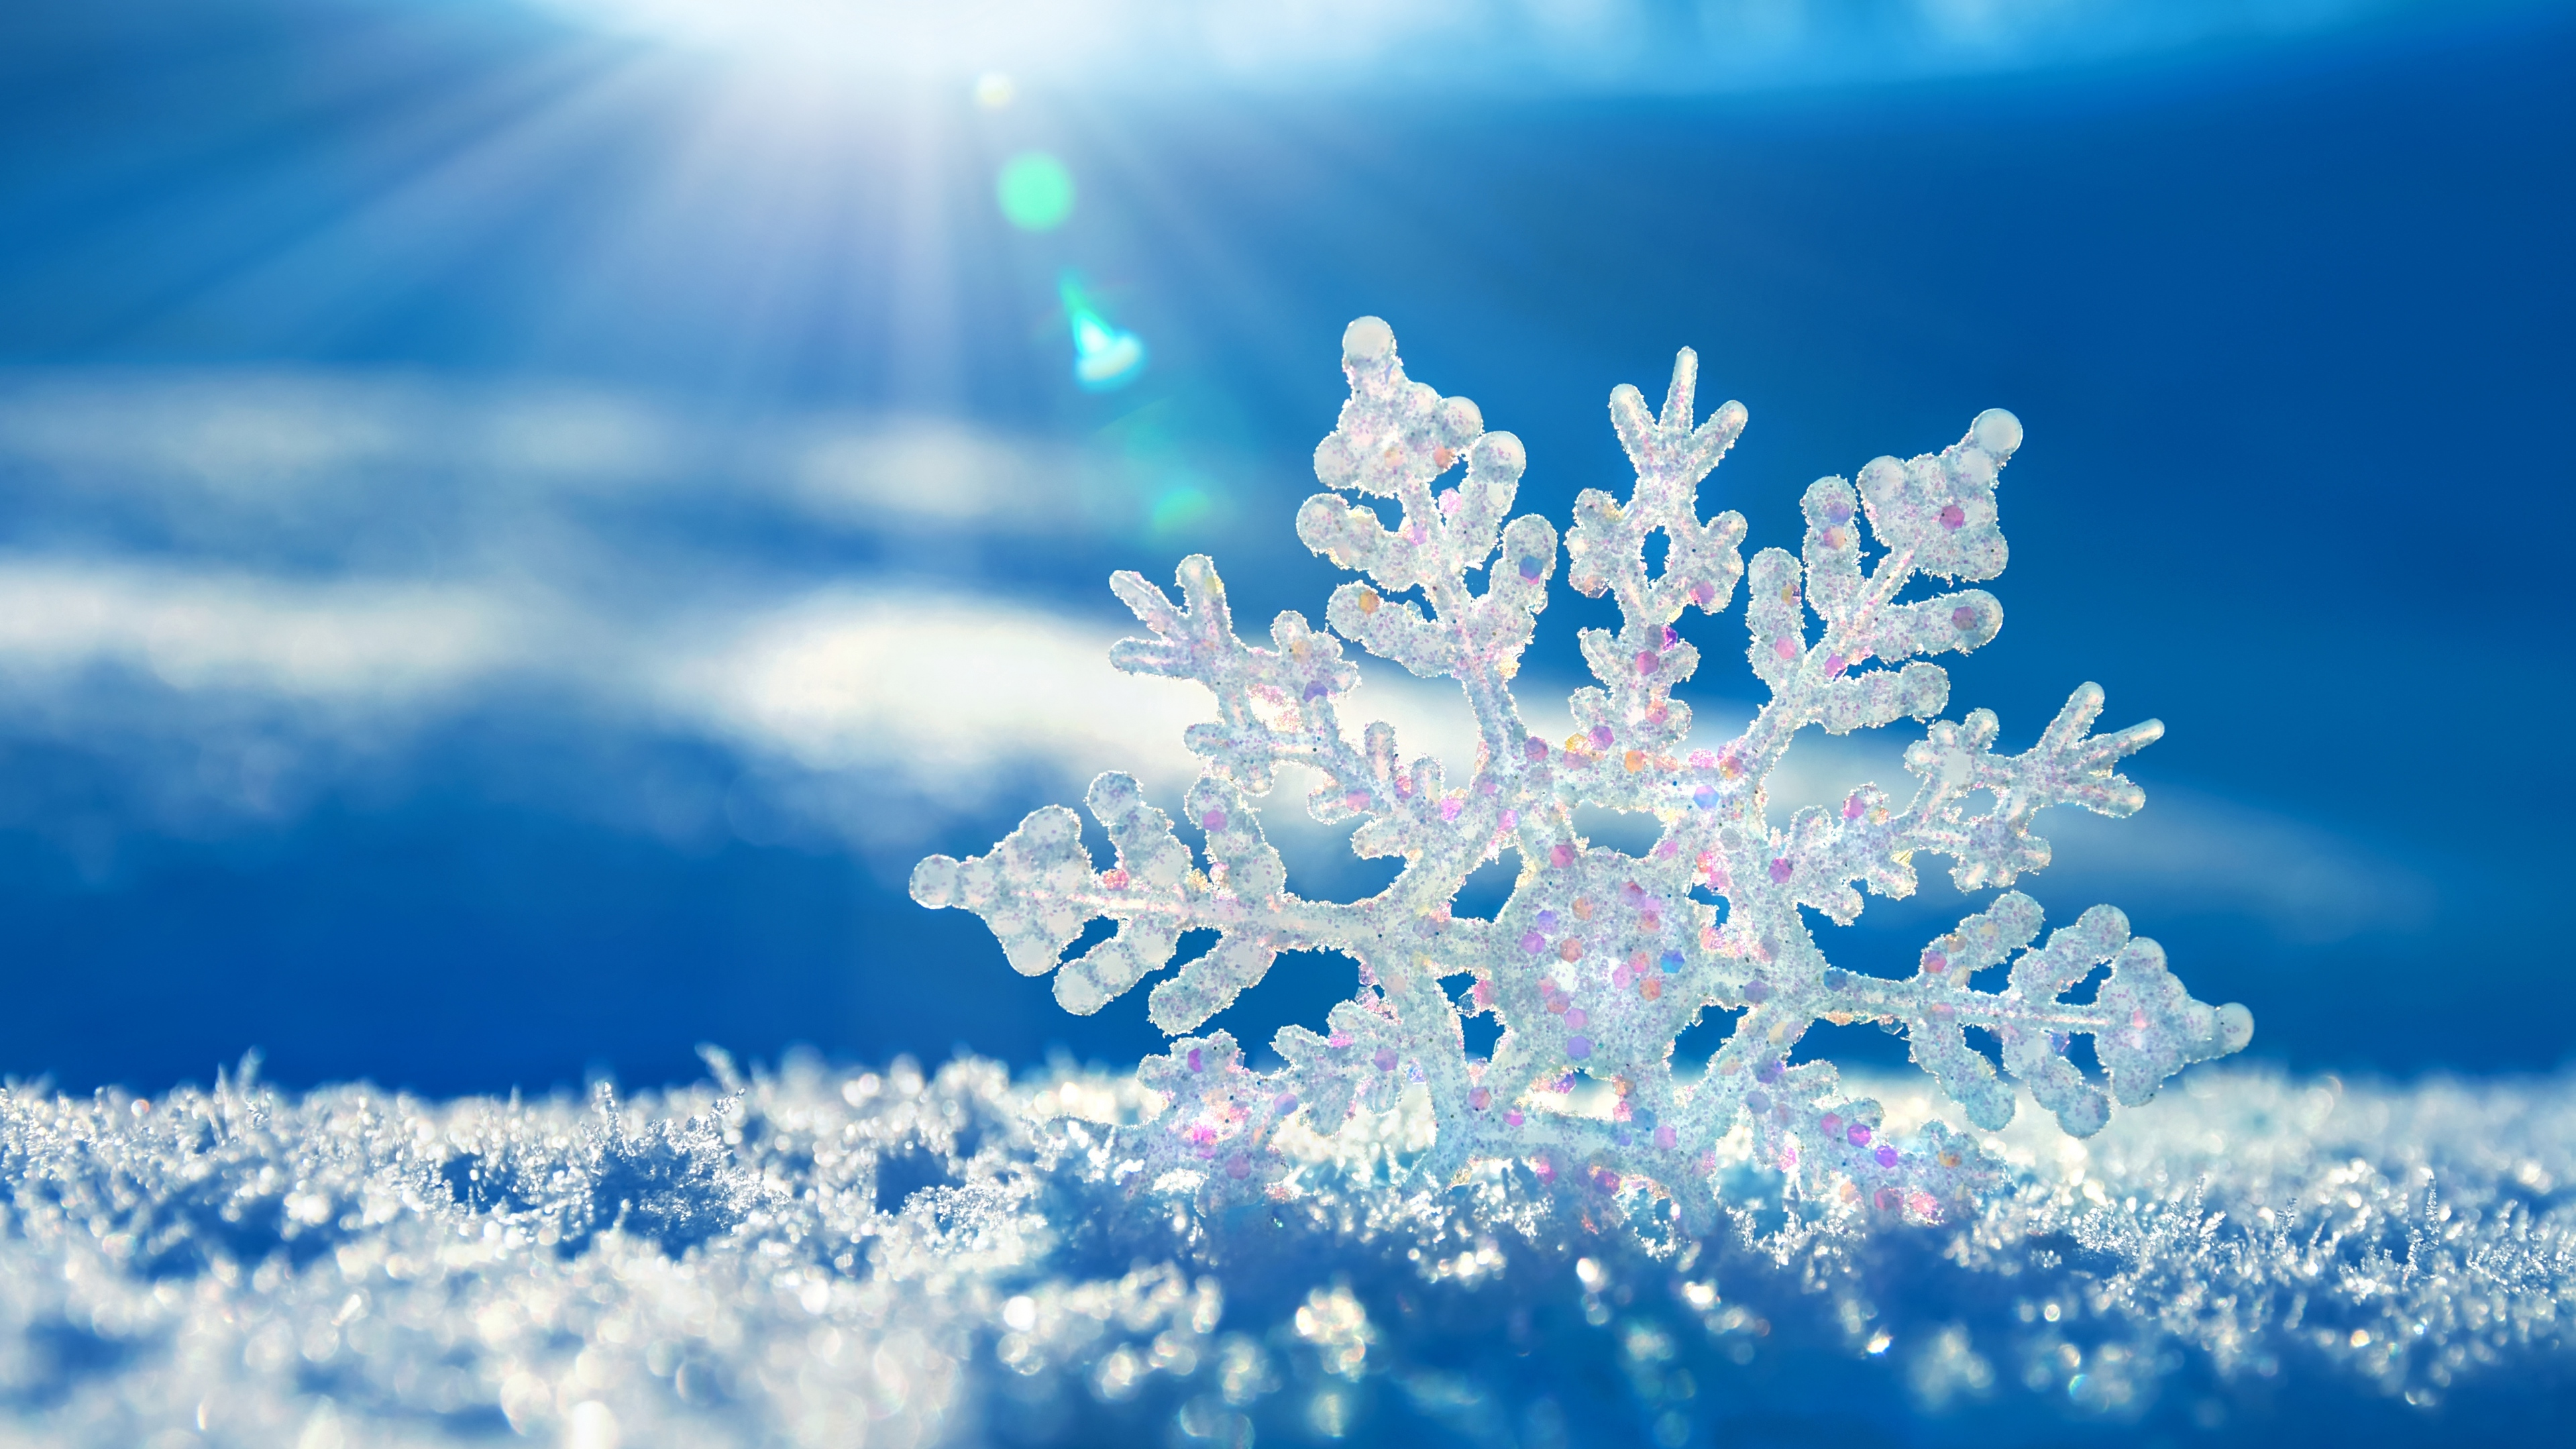 Download Wallpaper 3840x2160 Snow Snowflake Winter 4K Ultra HD HD 3840x2160